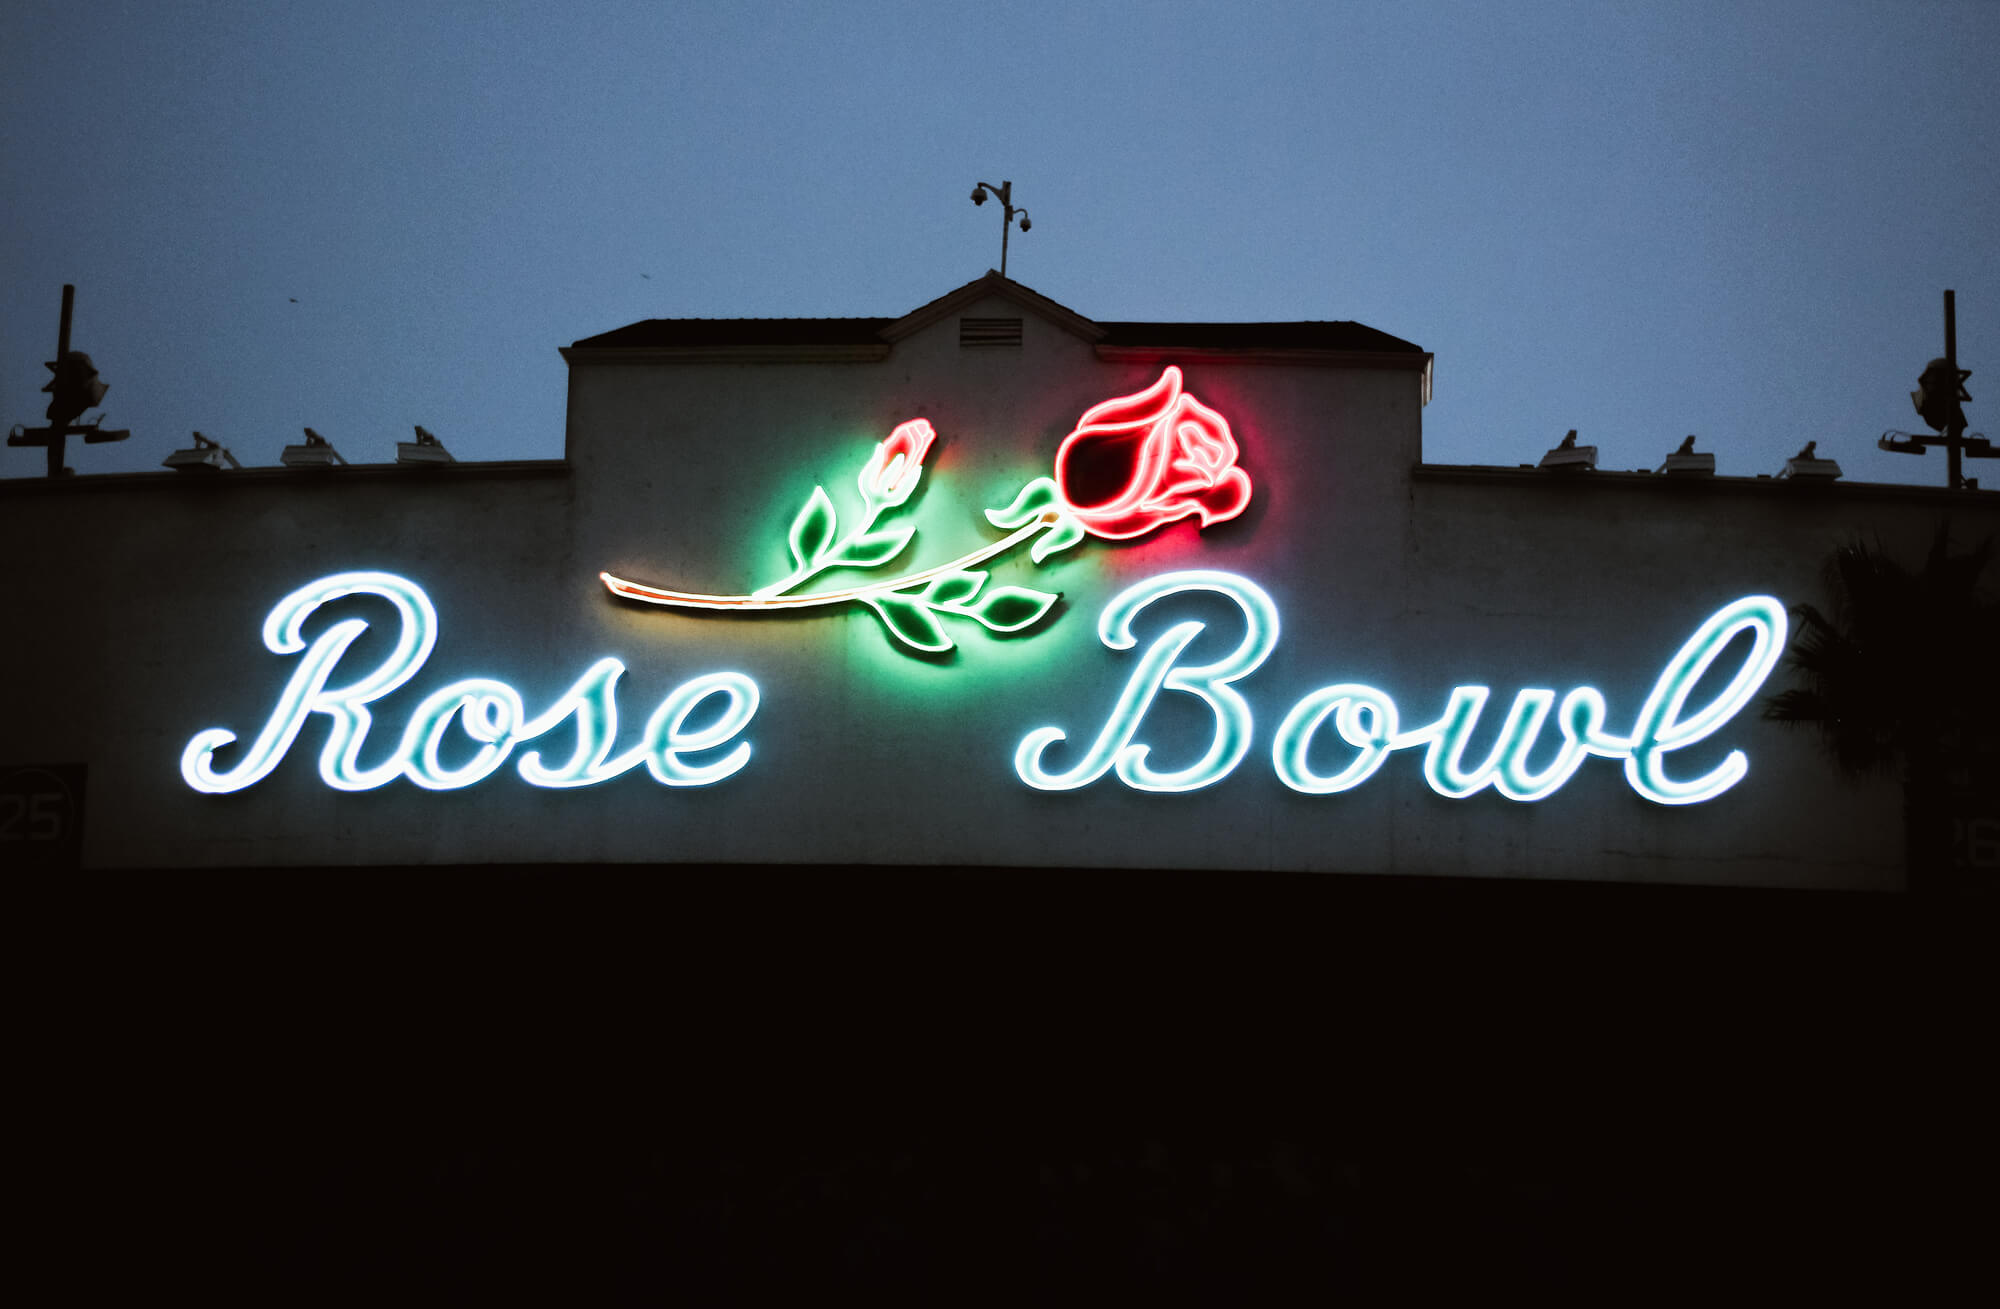 City of Pasadena - Rose Bowl